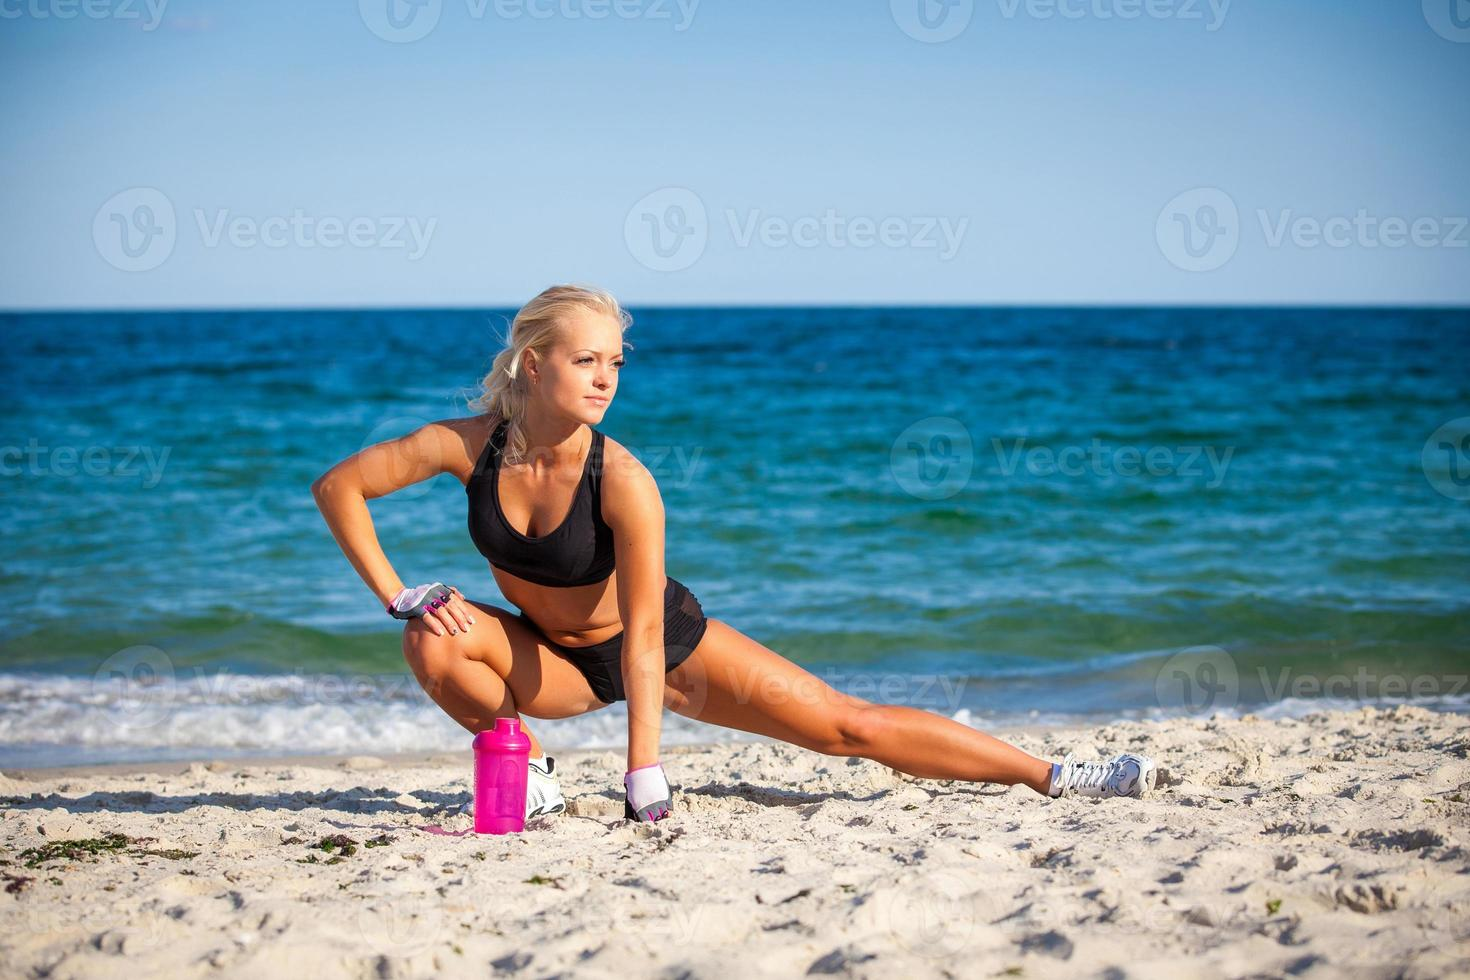 fitness and lifestyle concept photo